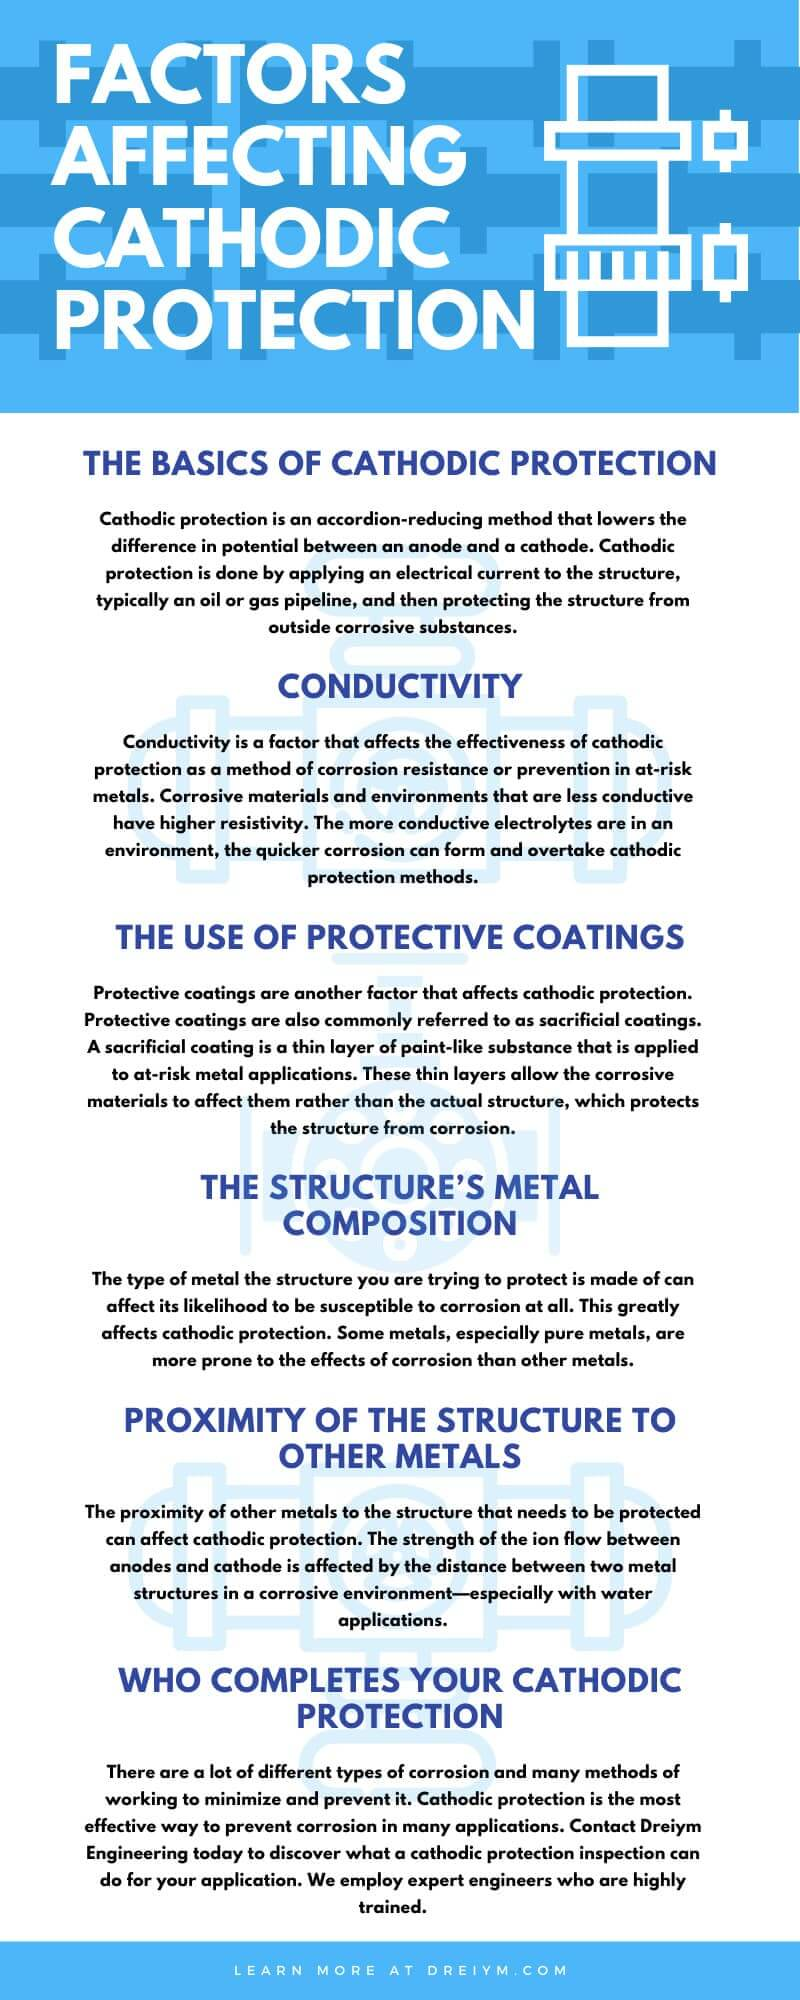 Factors Affecting Cathodic Protection